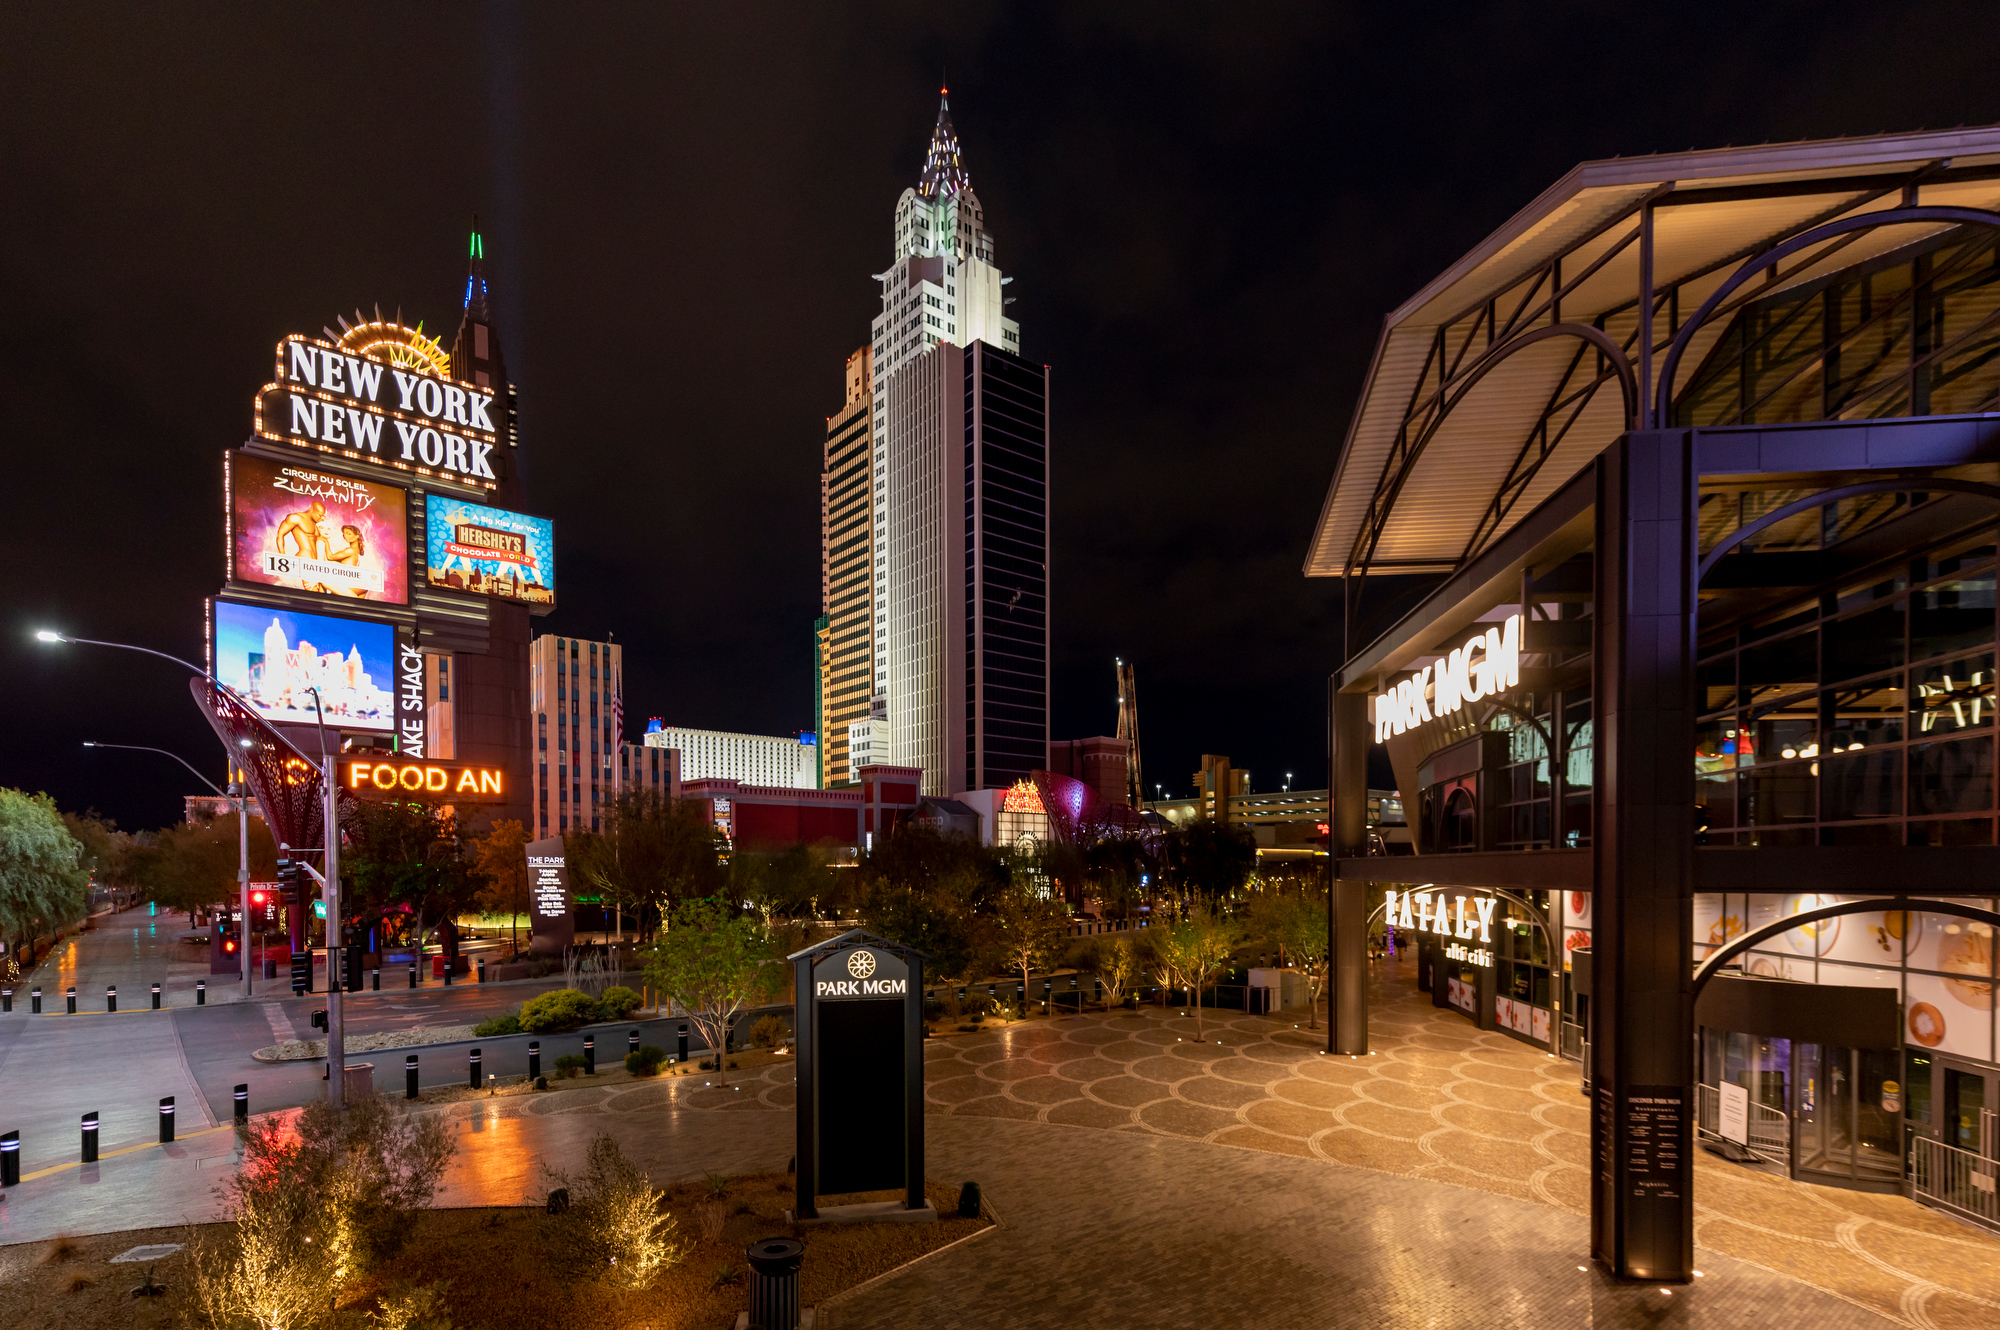 New York-New York and the Park MGM at night